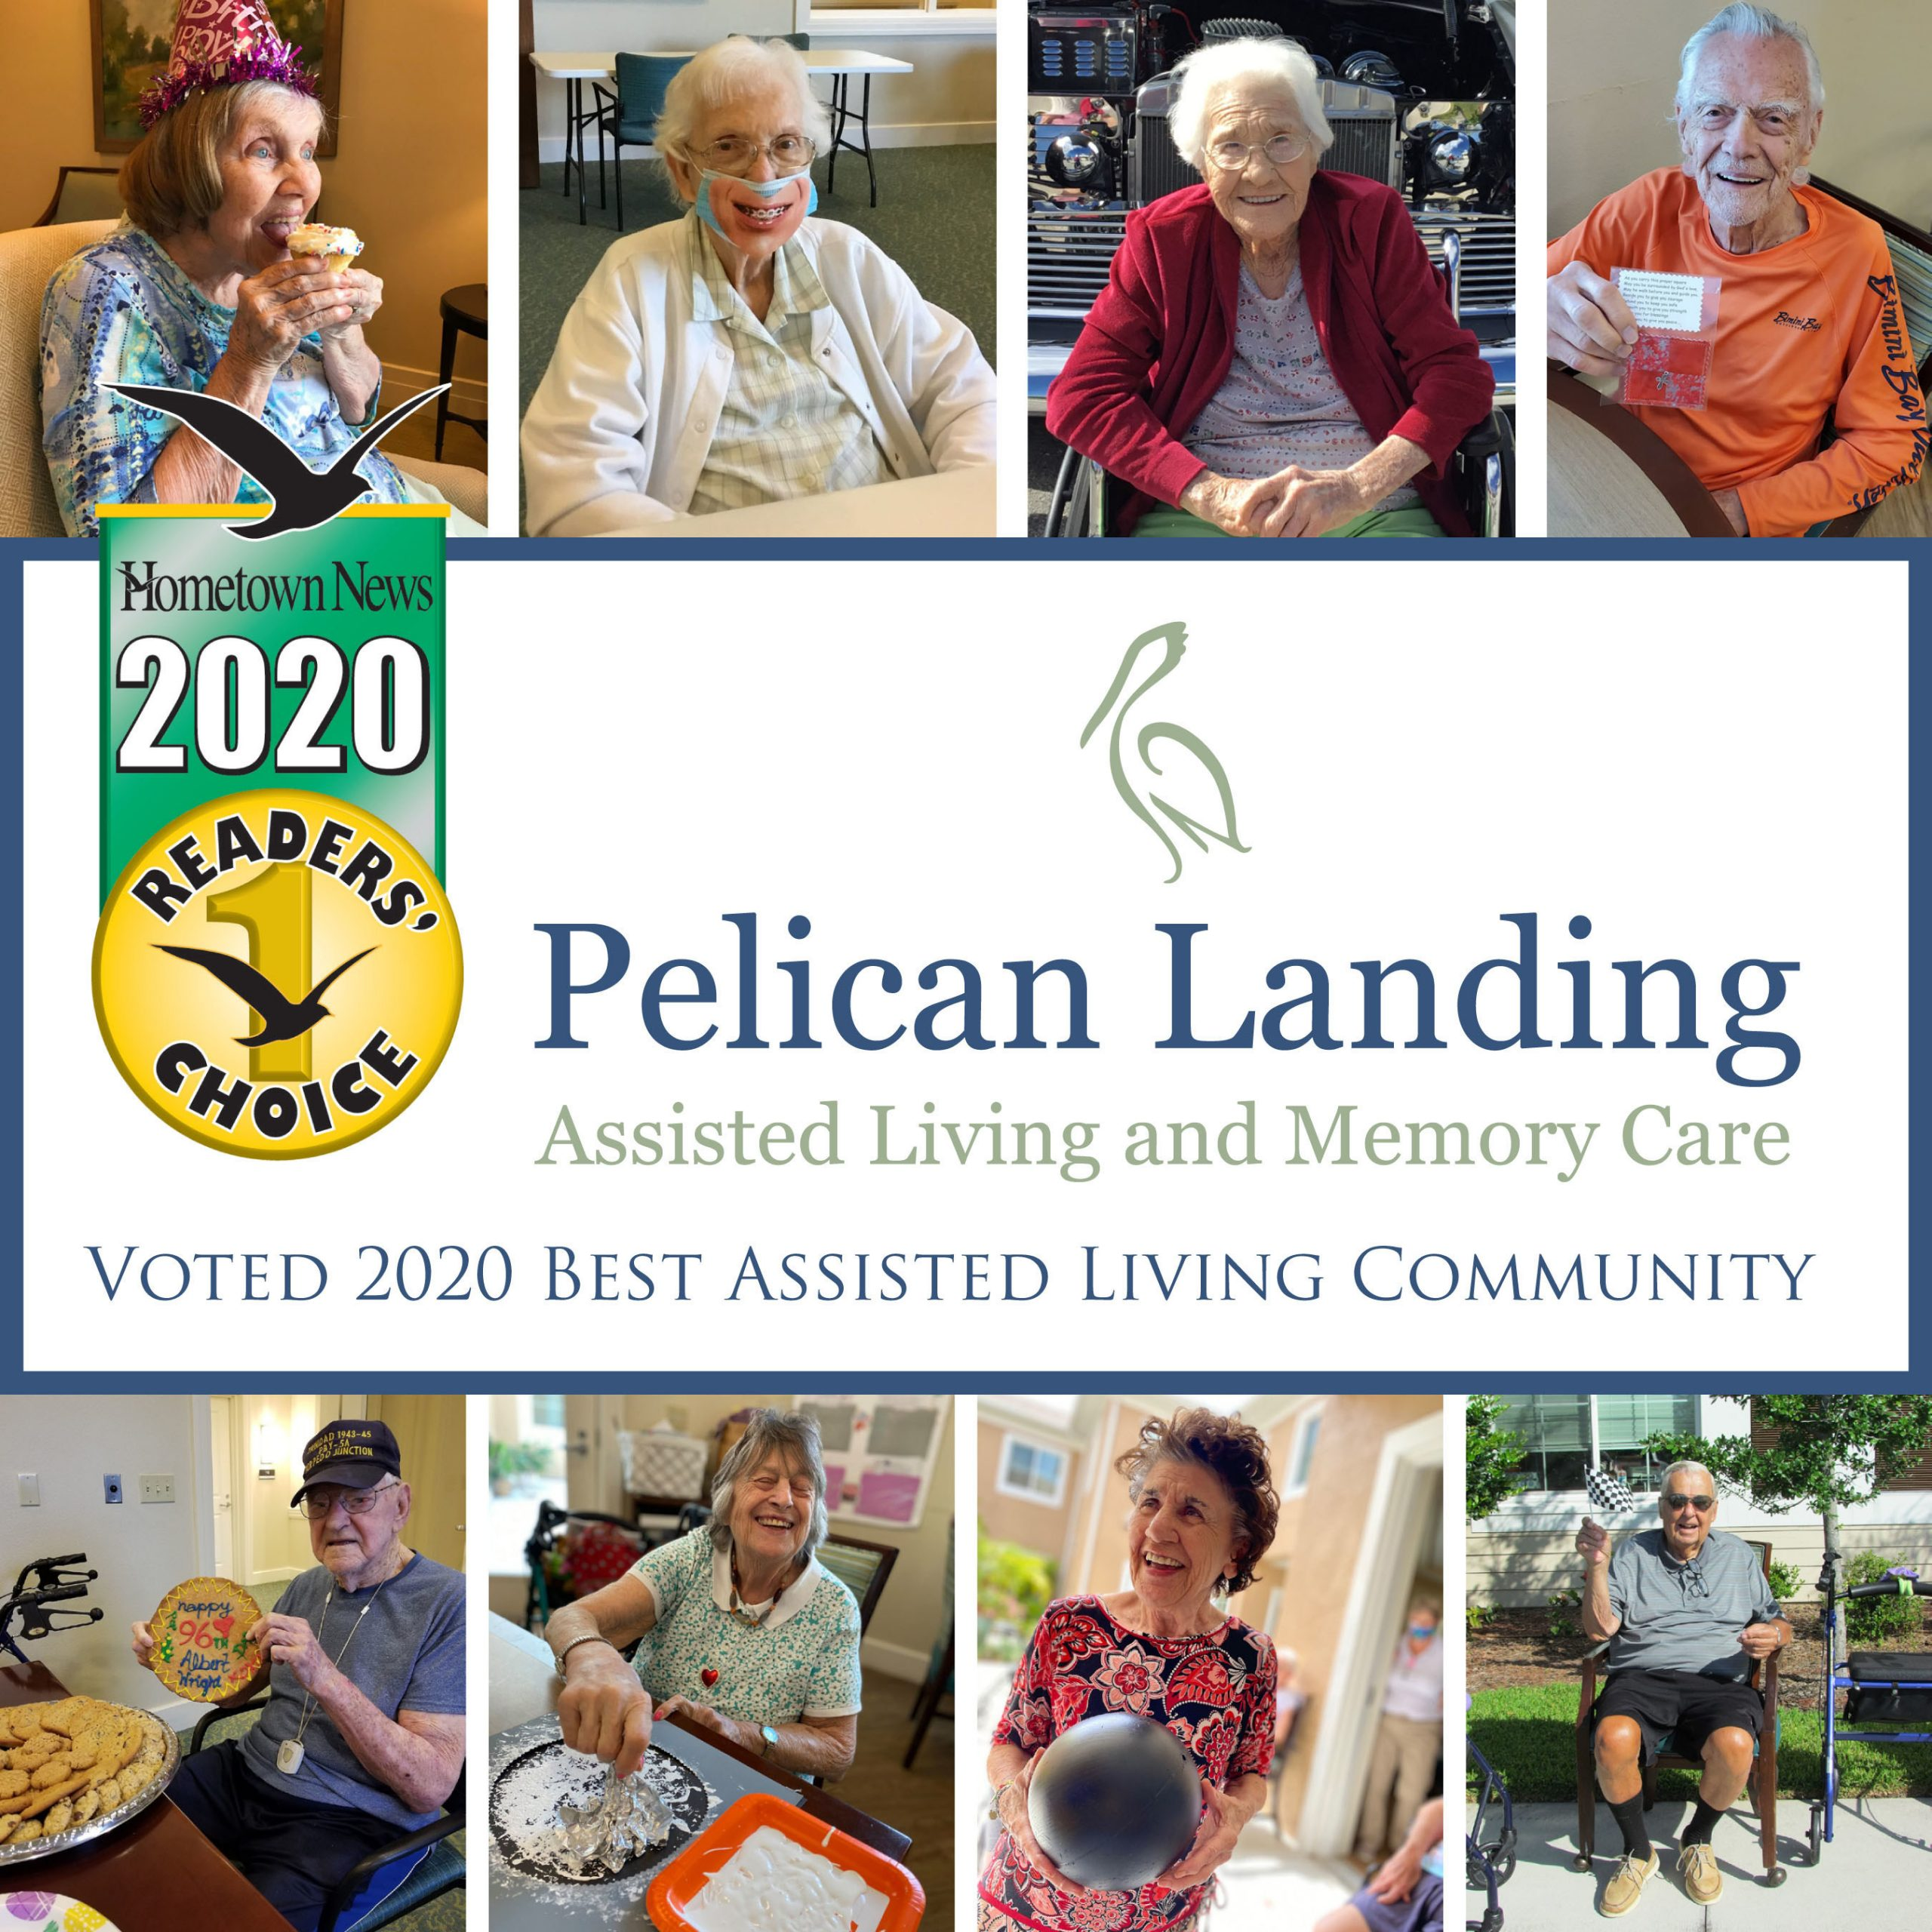 Pelican Landing Assisted Living and Memory Care Voted 'Best Assisted Living Community' for Two Consecutive Years